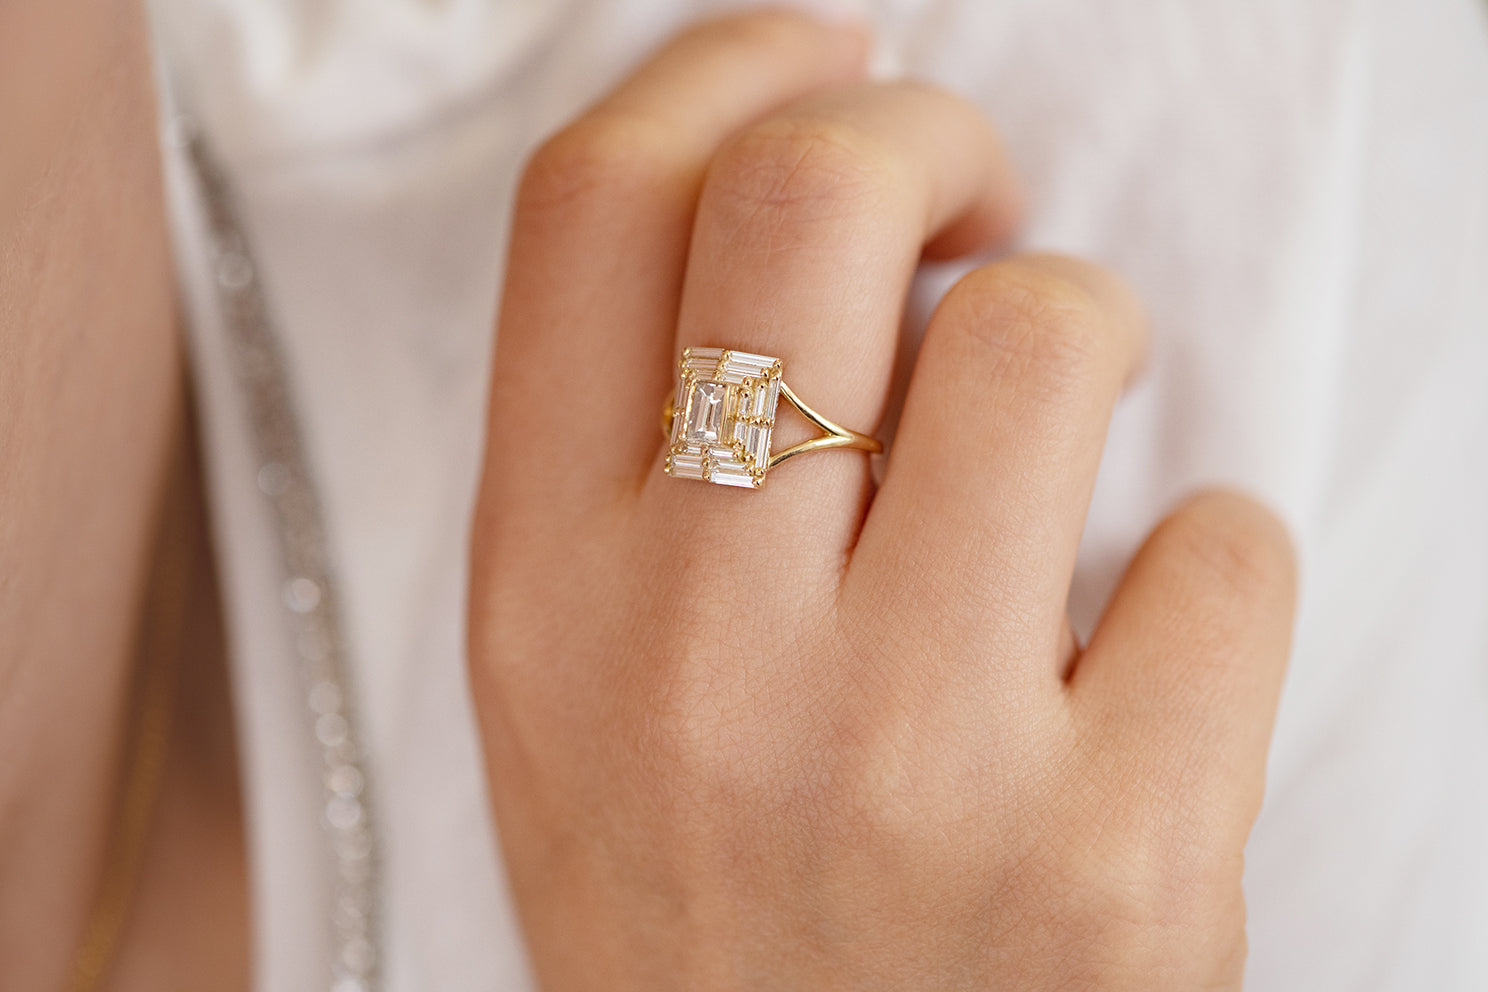 Baguette Cut Engagement Ring - Baguette Temple Ring on Hand Up Close on Hand